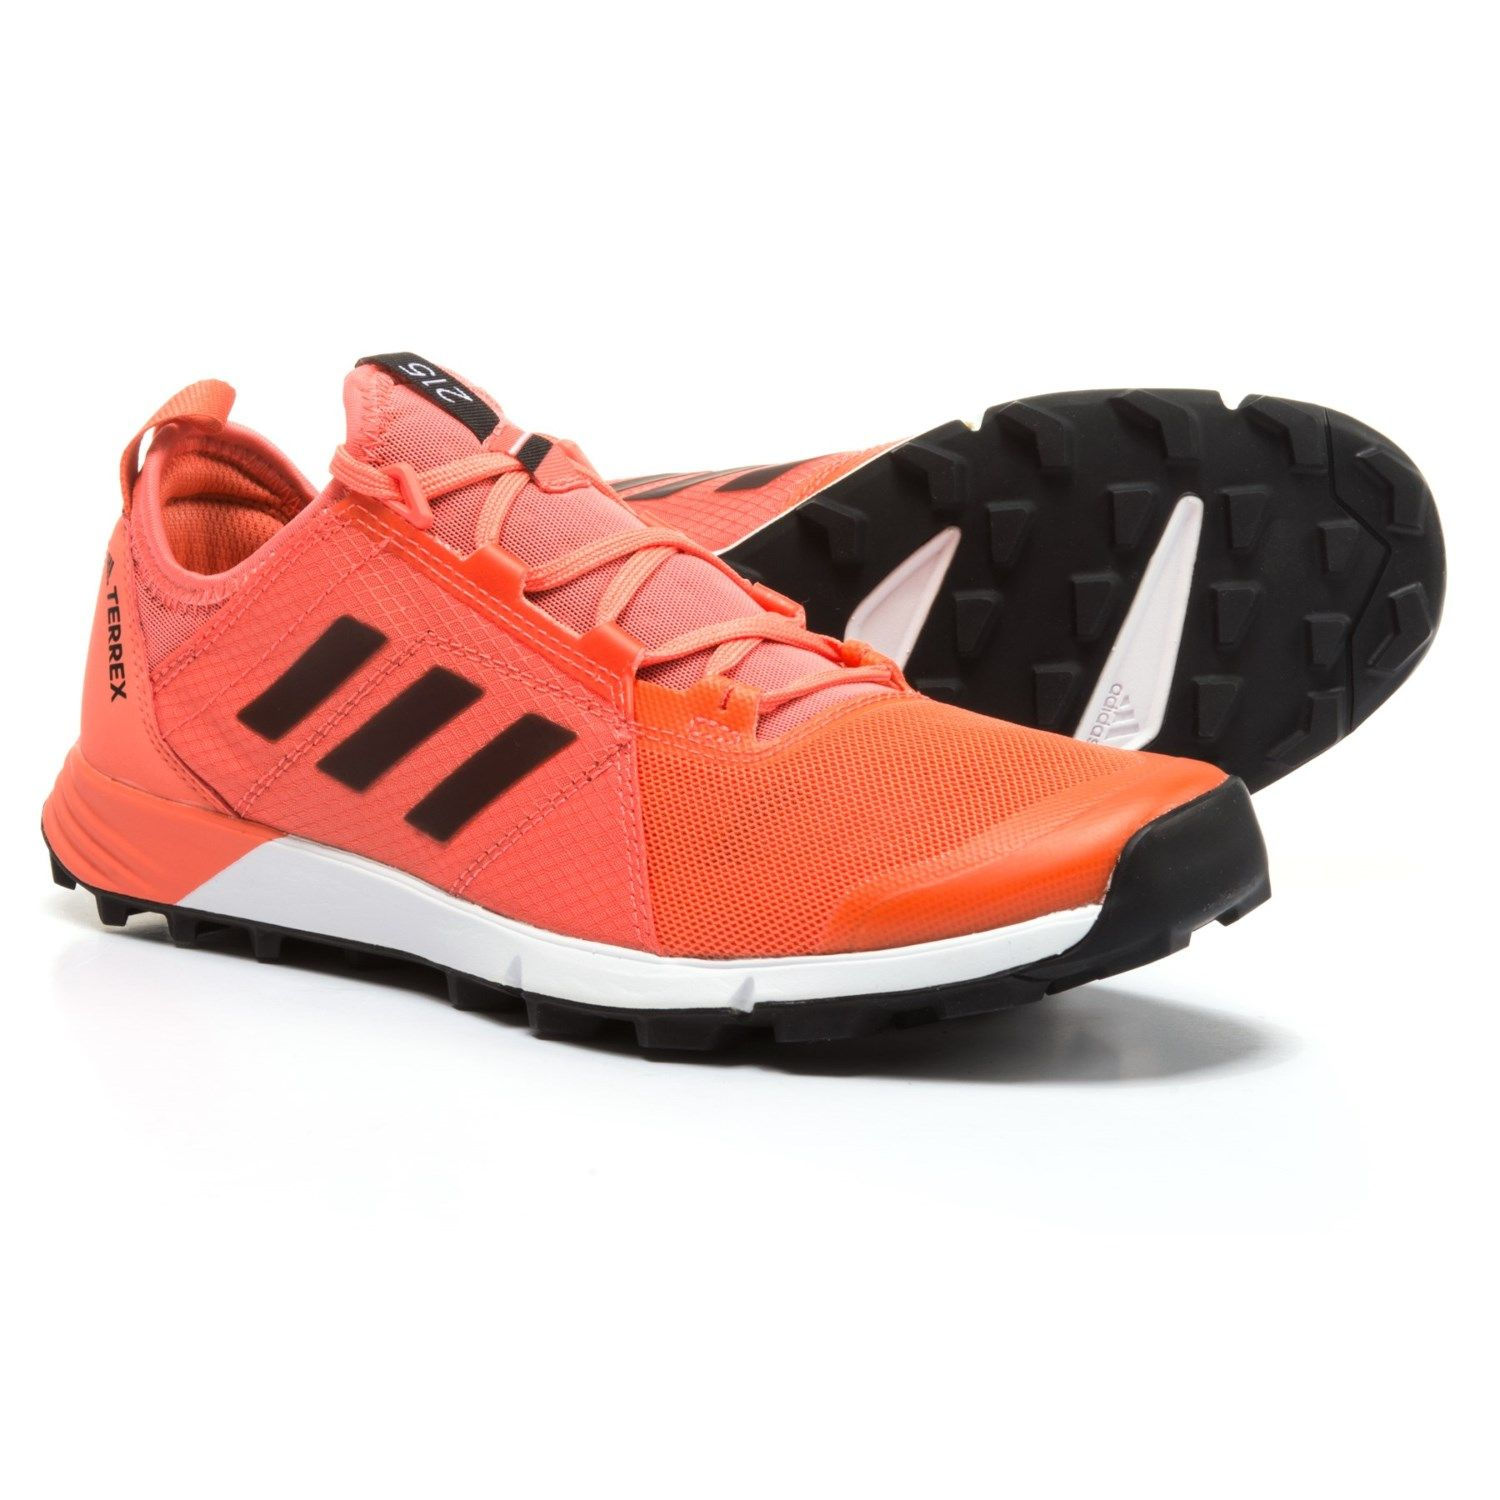 adidas outdoor Terrex Agravic Speed Trail Running Shoes (For Women)